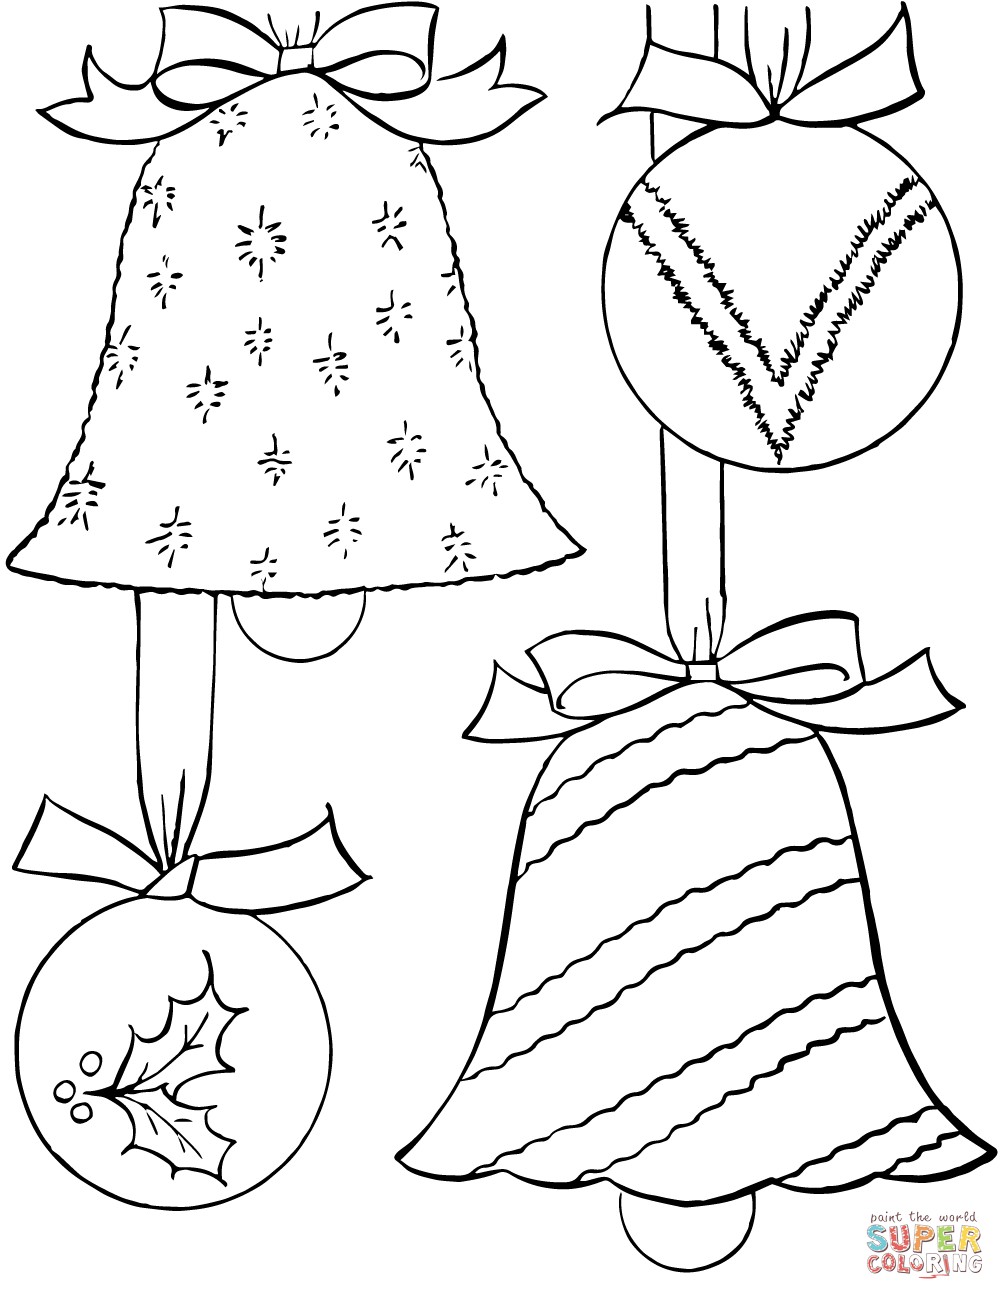 Christmas Ornaments Coloring Page | Free Printable Coloring Pages - Free Printable Christmas Tree Ornaments To Color